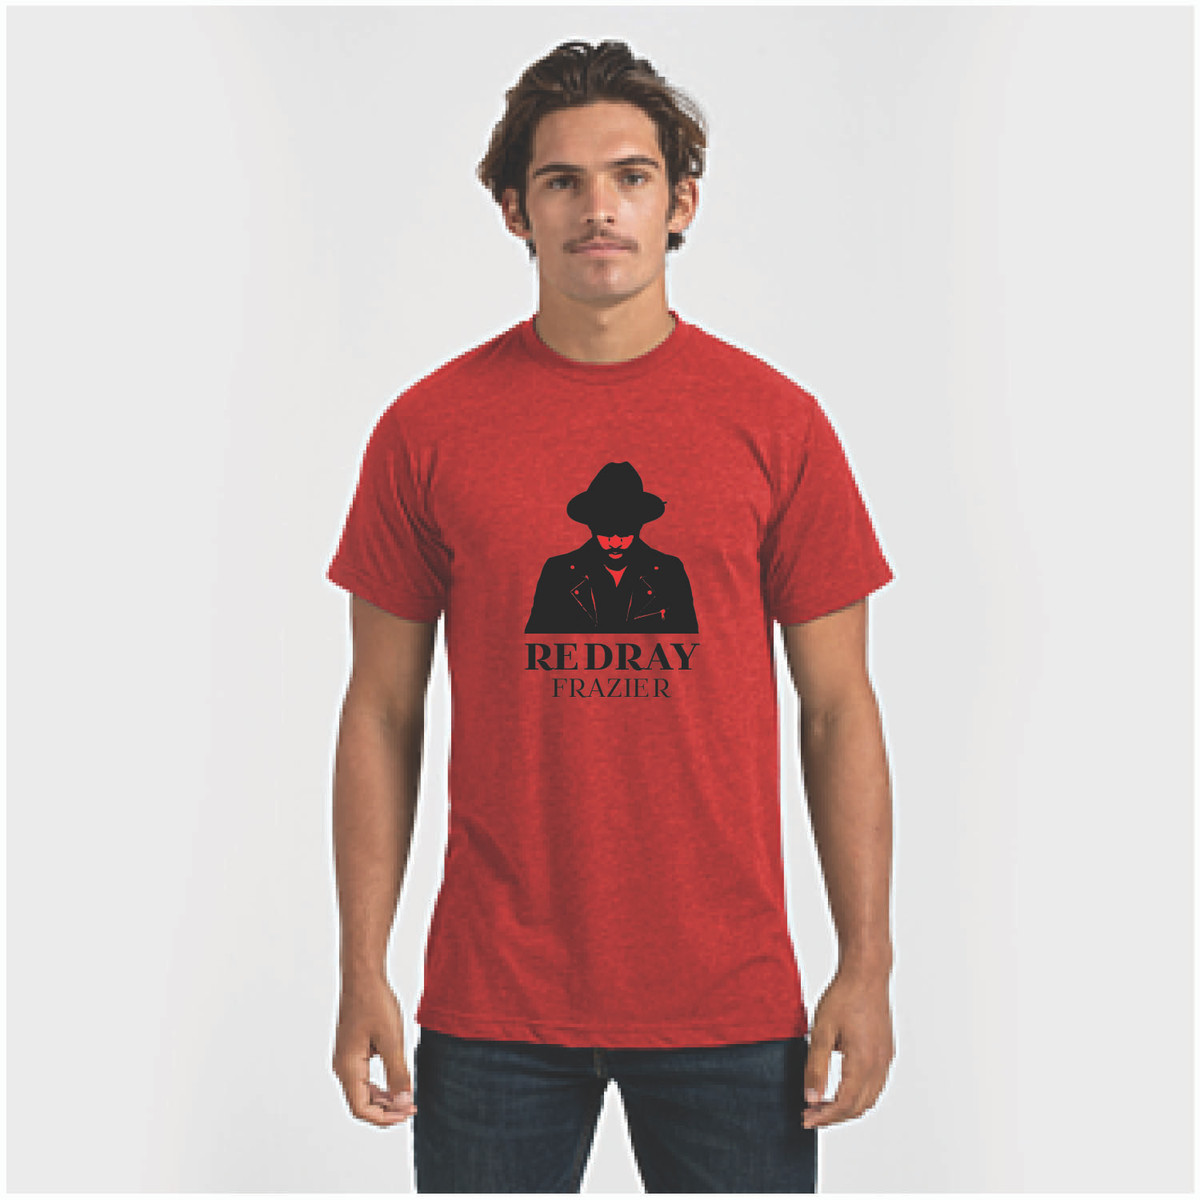 RedRay Frazier Tee - Heather Red